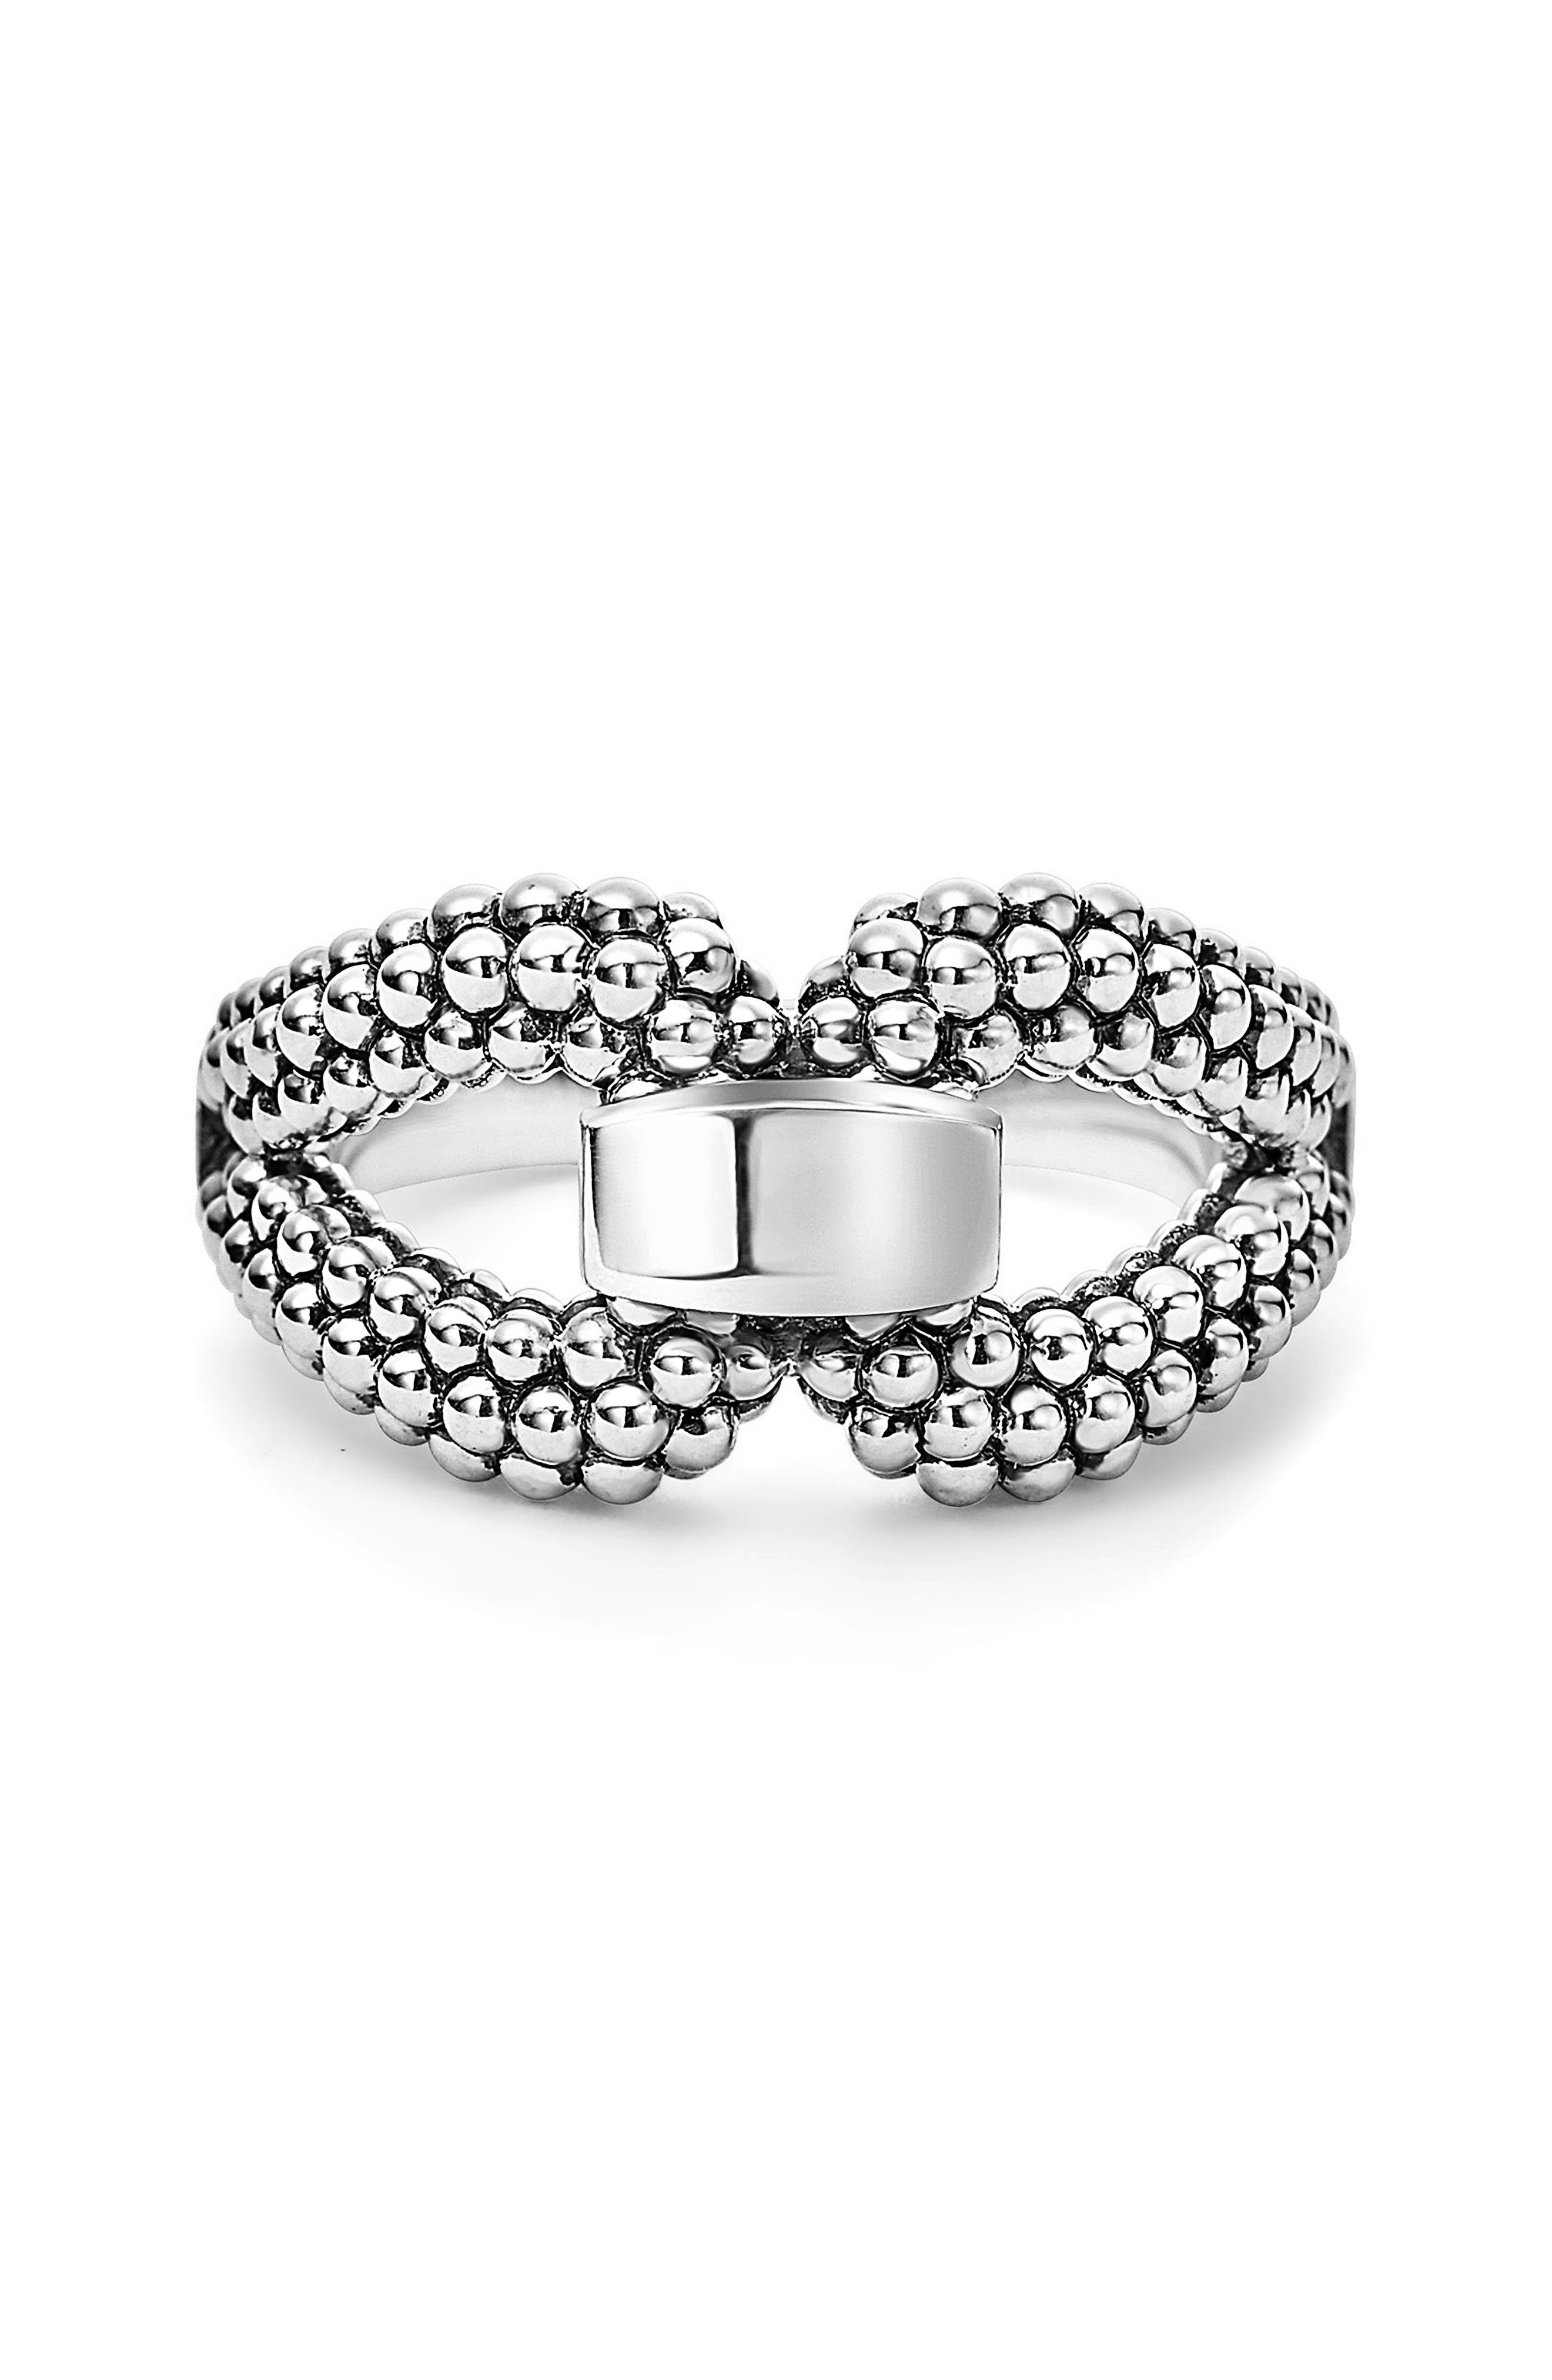 Derby Caviar Ring,                             Alternate thumbnail 3, color,                             Silver